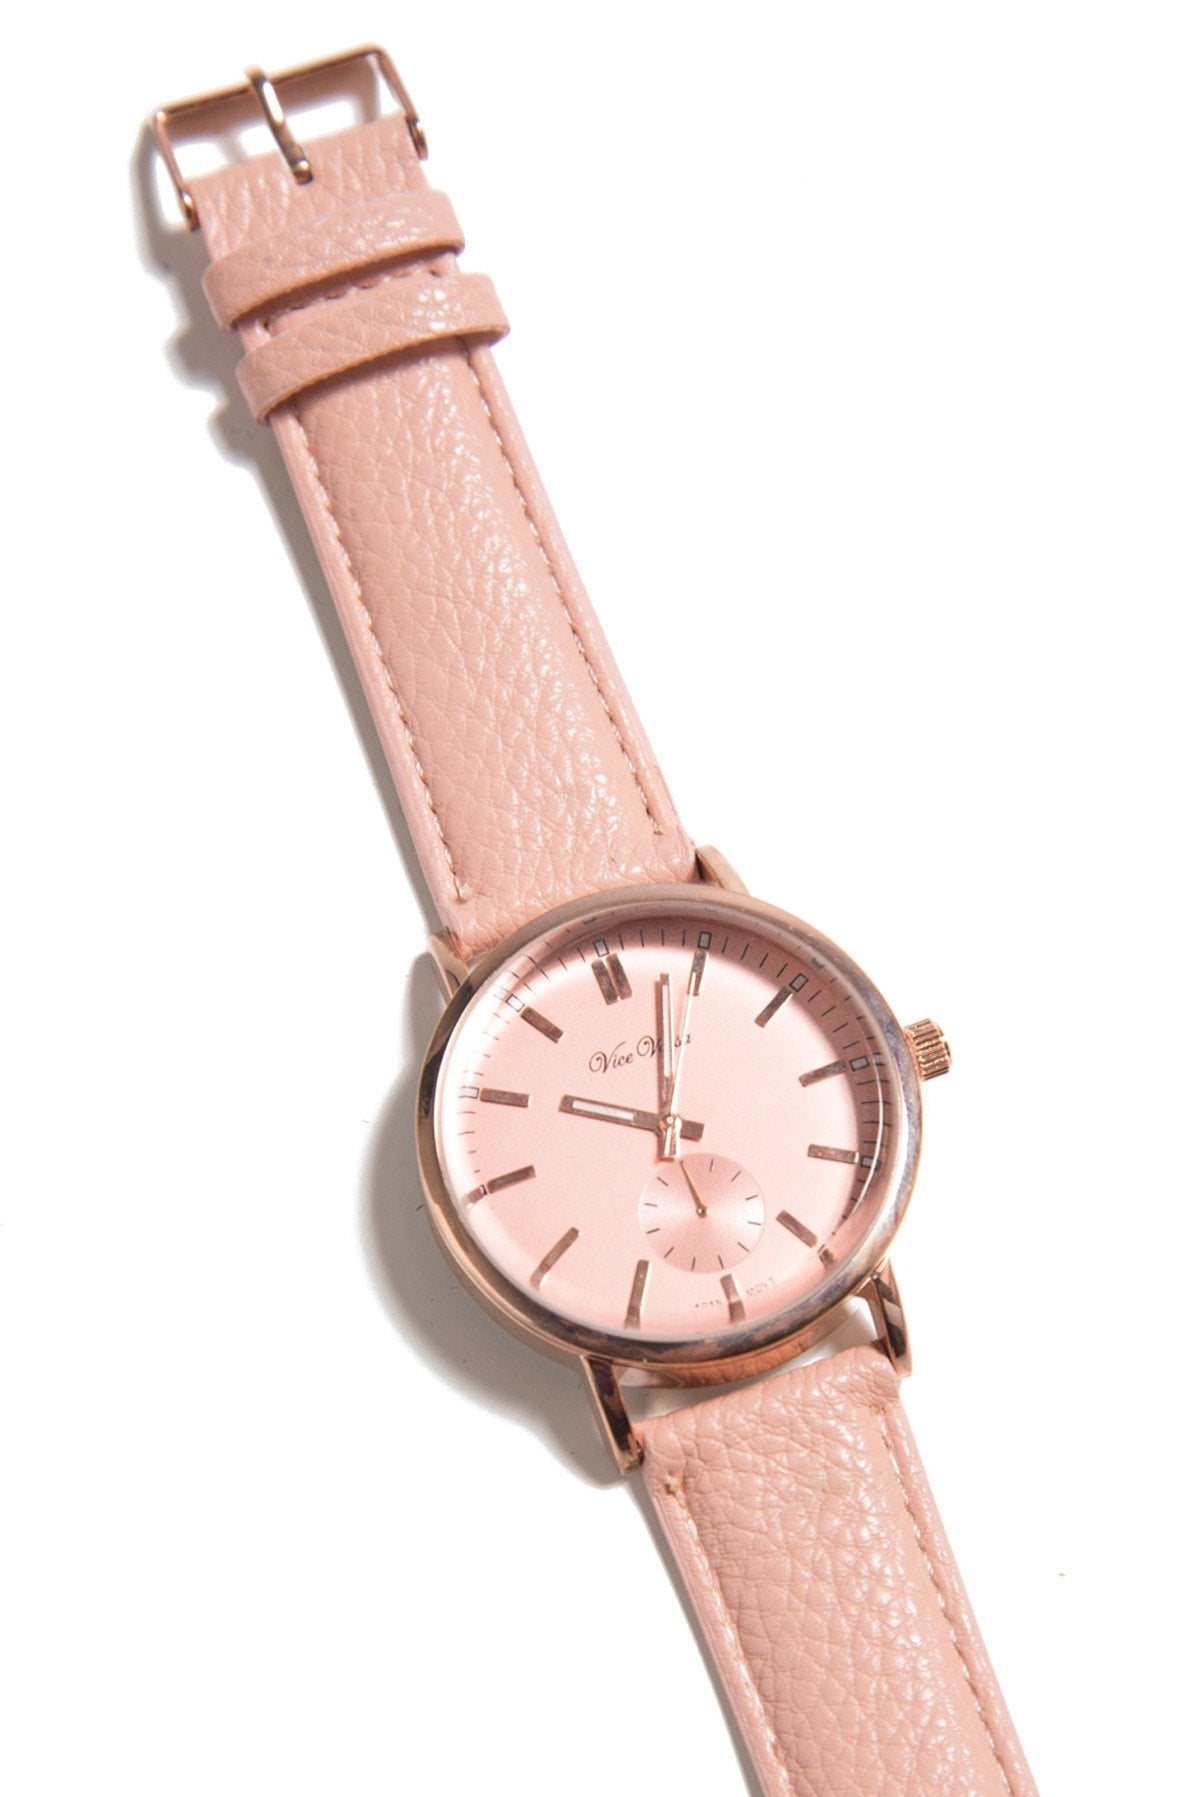 Its Time Now Watch - Fashion Effect Store  - 4